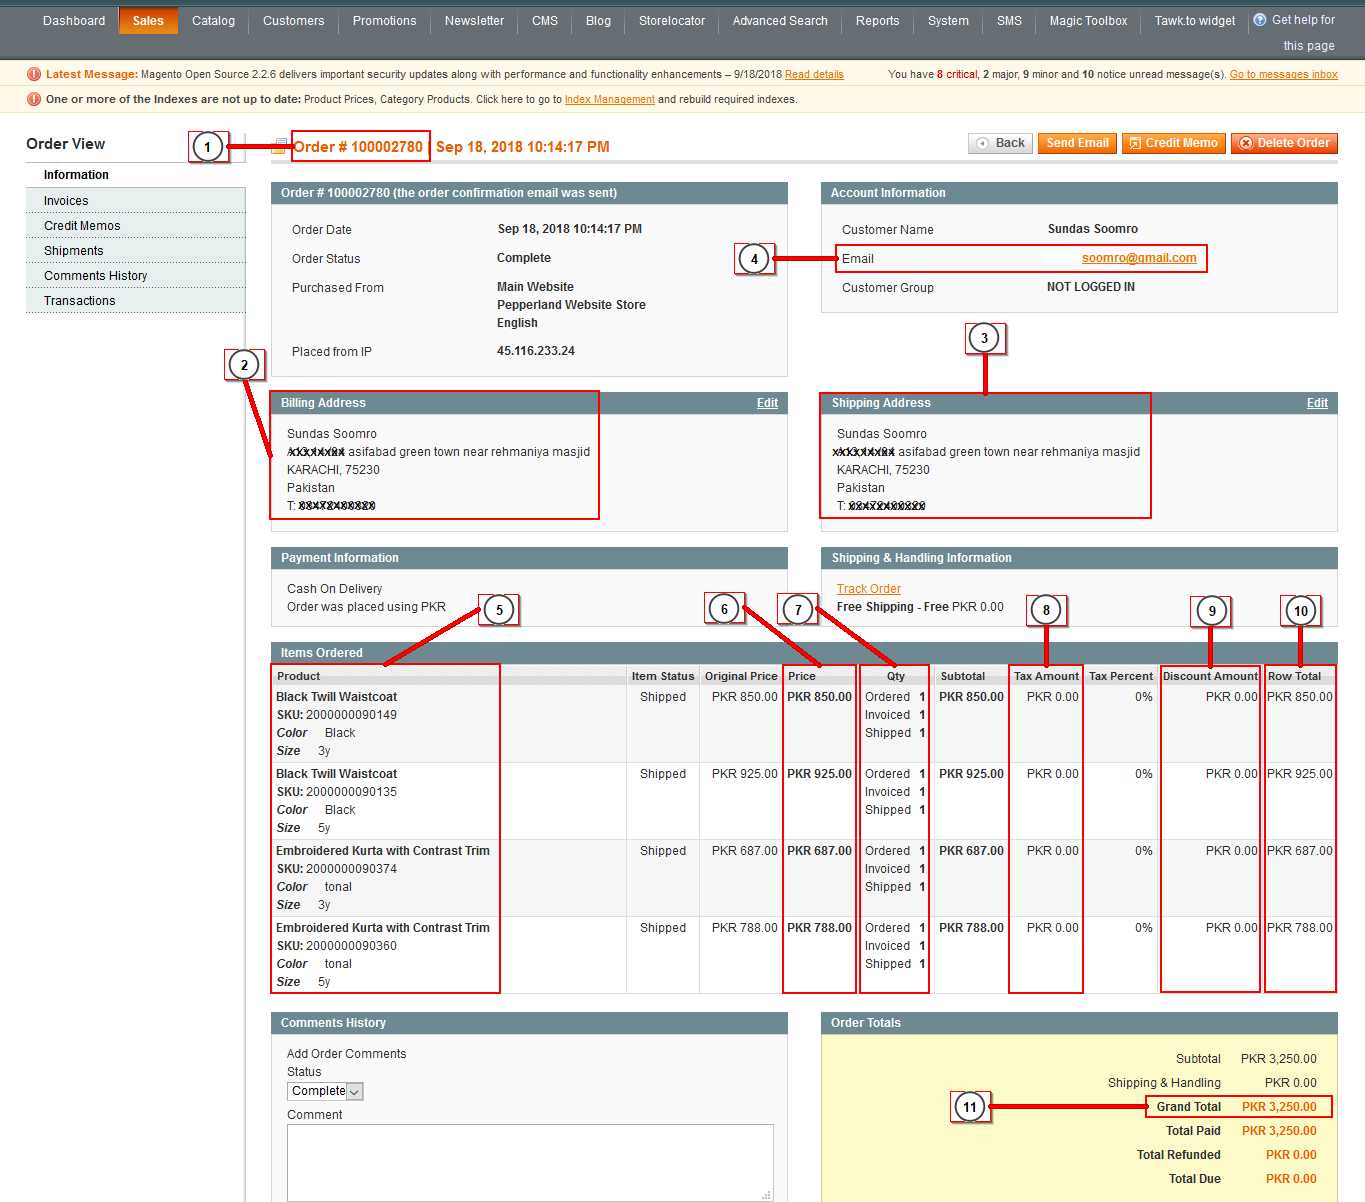 Our Integration Allows You to Download Magento Order